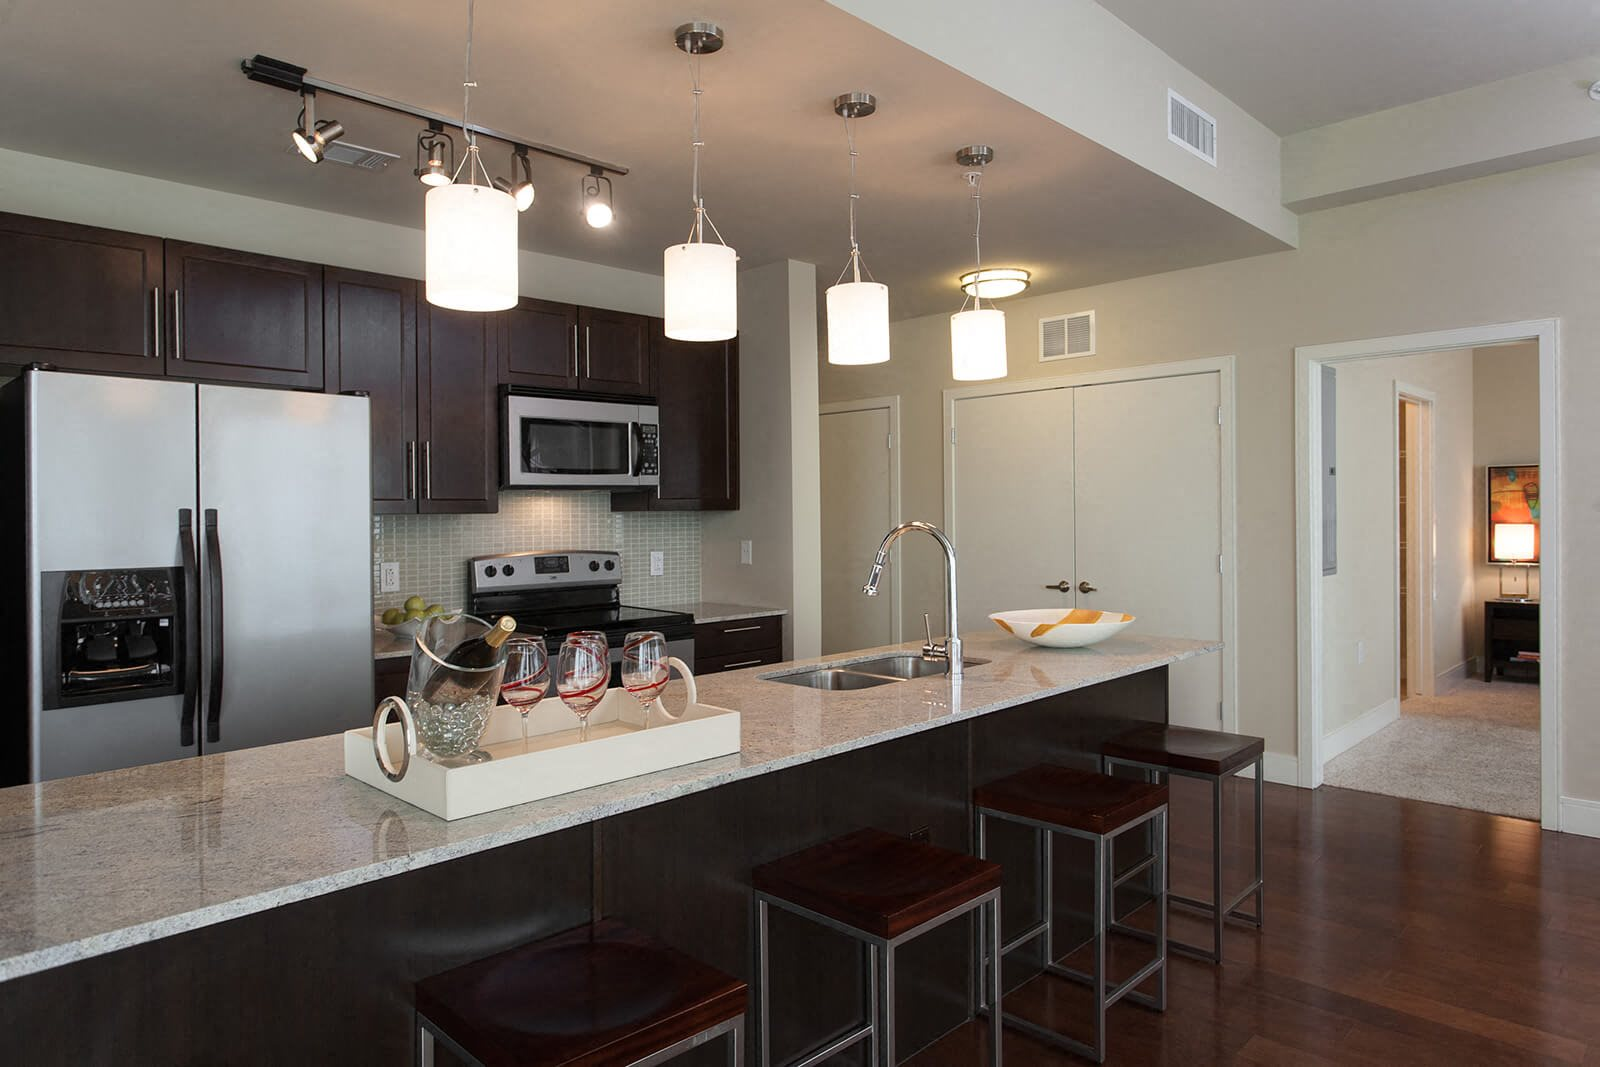 Gourmet Kitchens at Memorial by Windsor, 3131 Memorial Court, TX